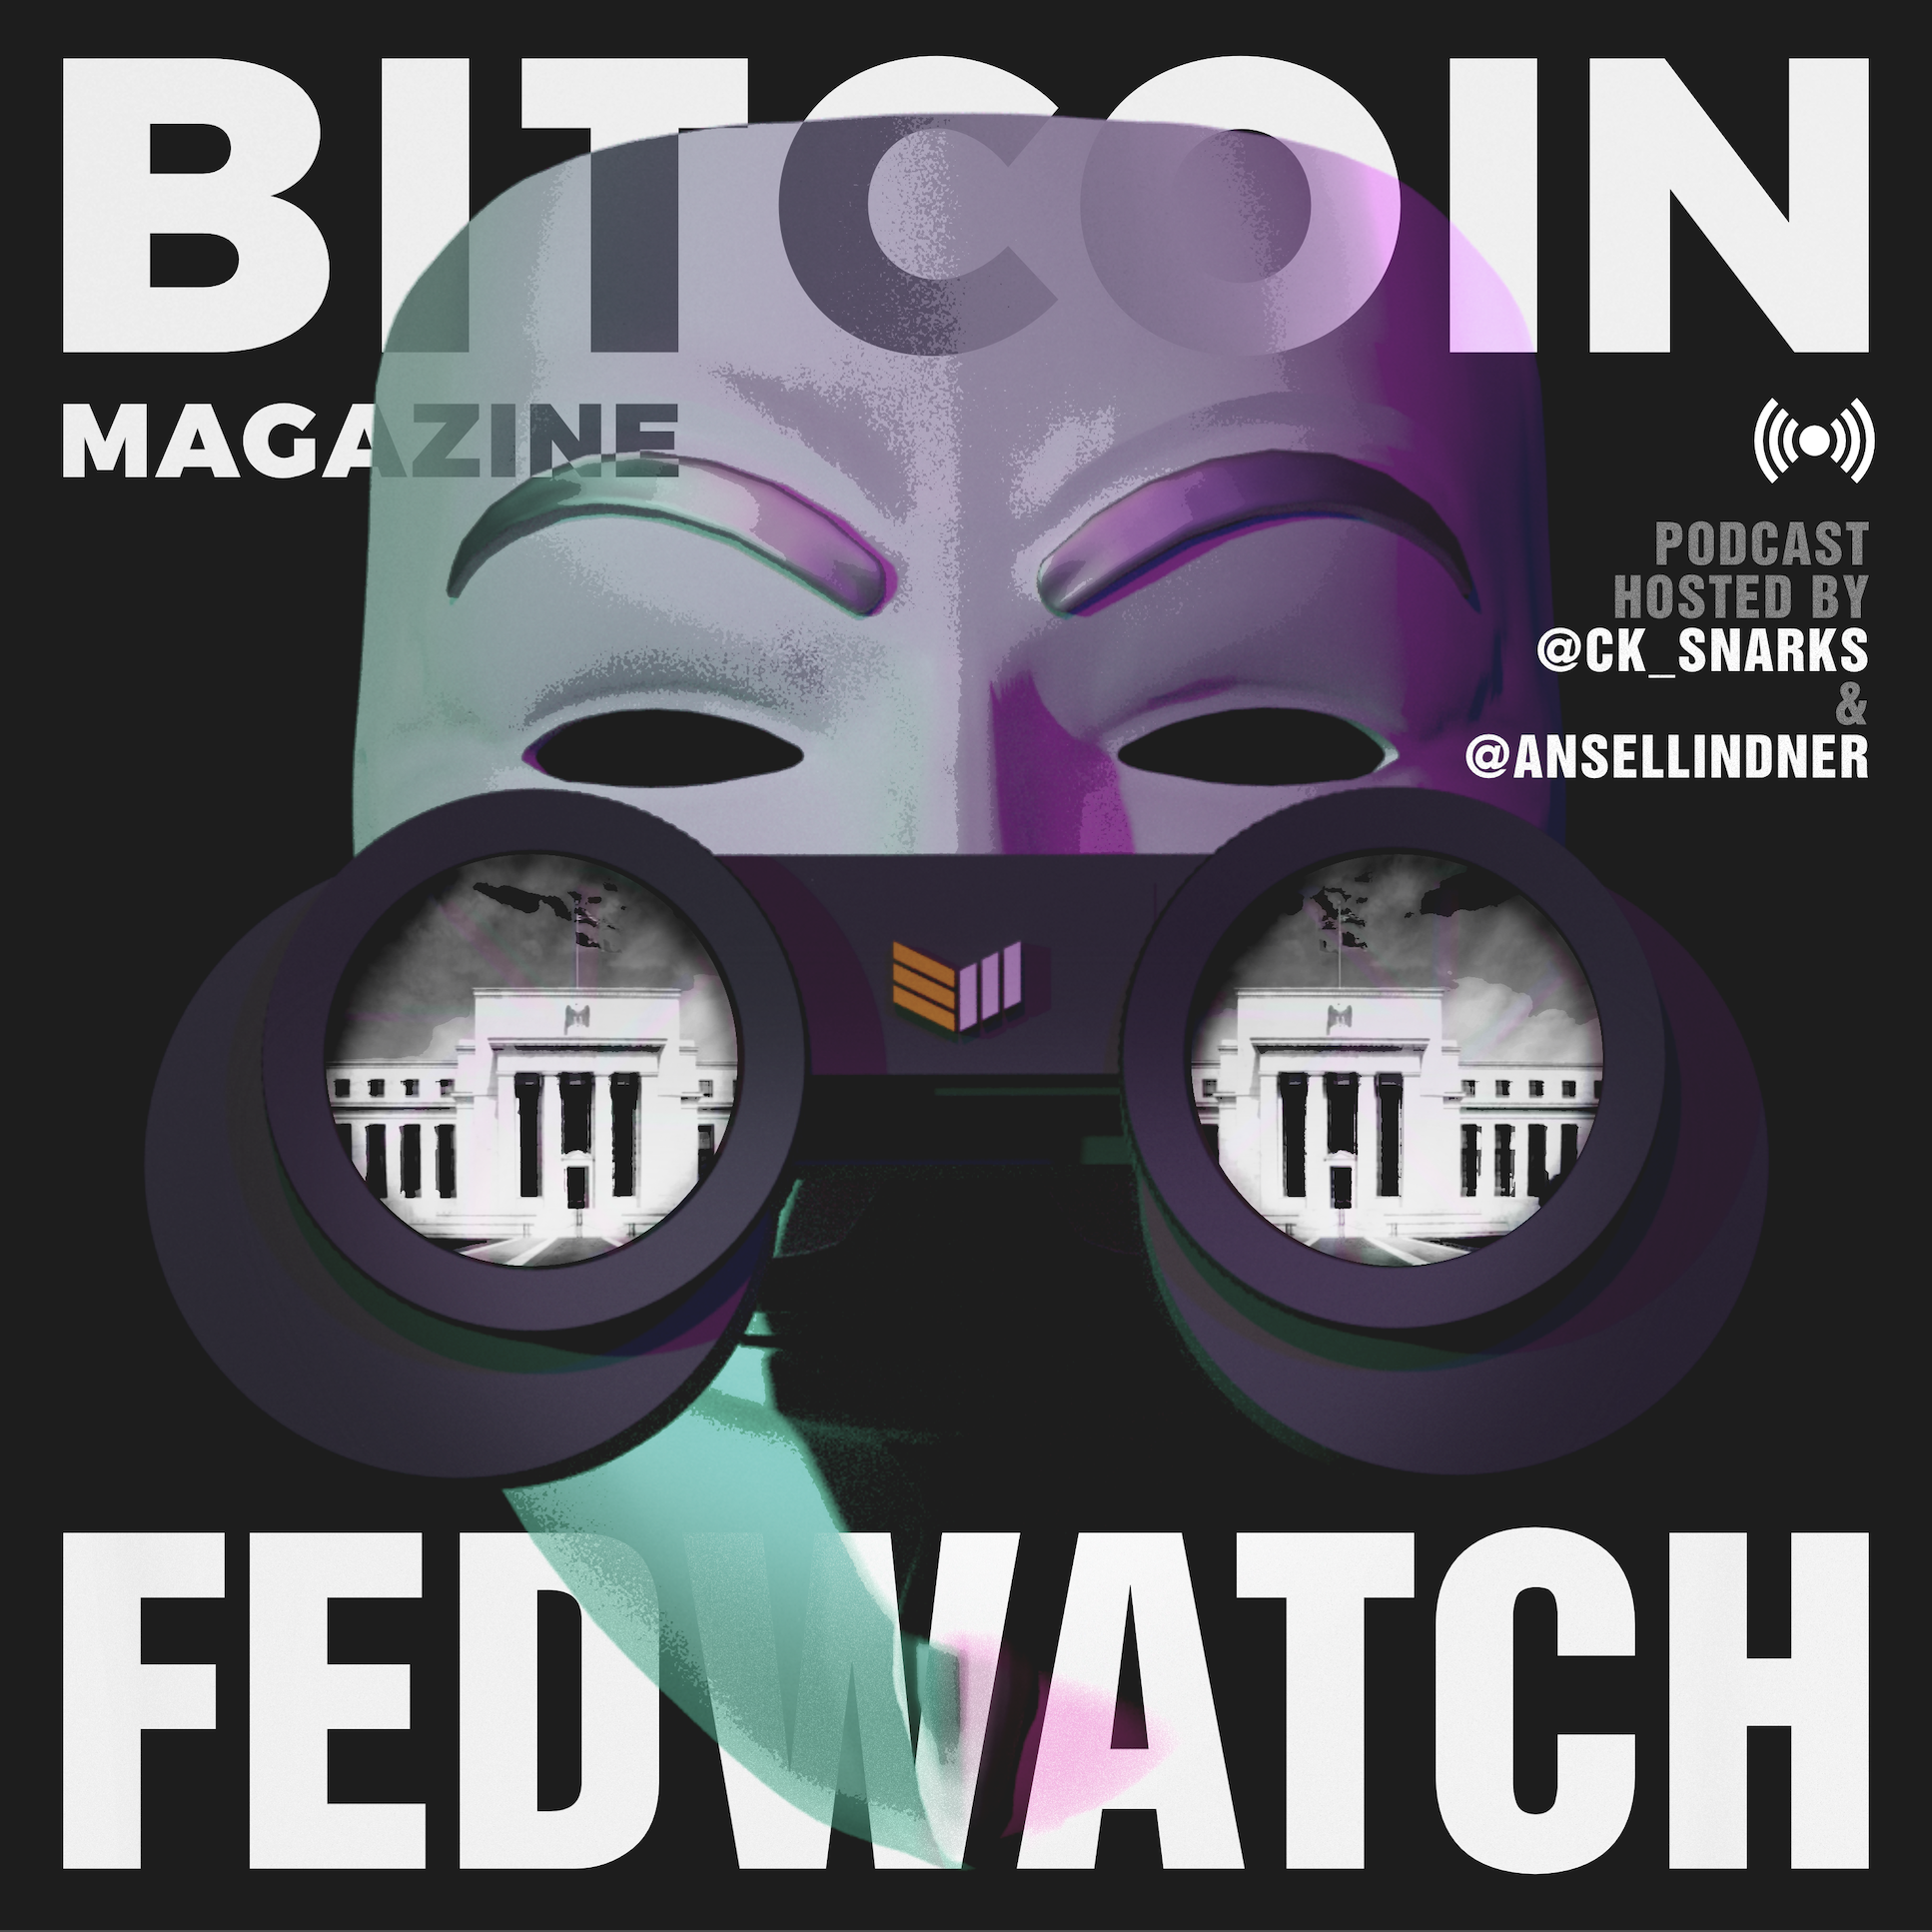 FEDWATCH podcast cover art